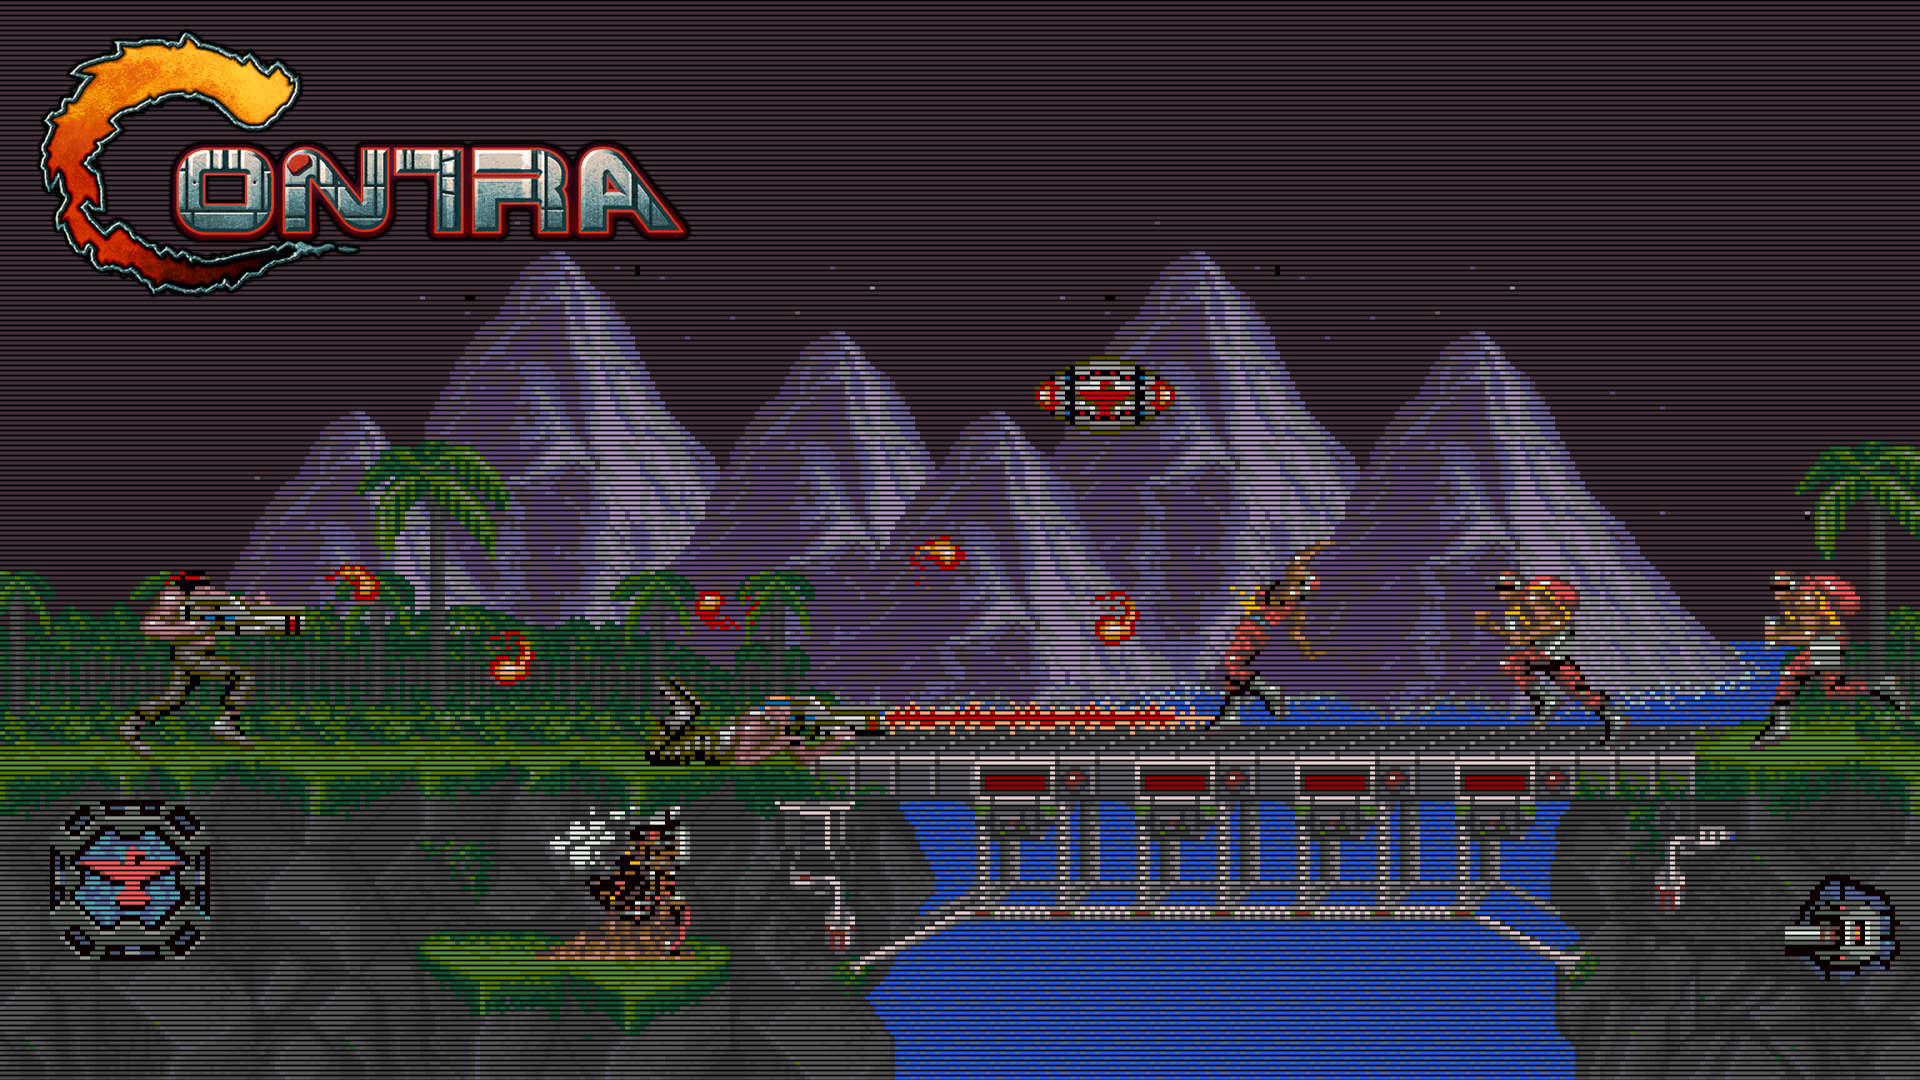 Desktop Backgrounds: Contra, by Meagan Schult, 1920x1080